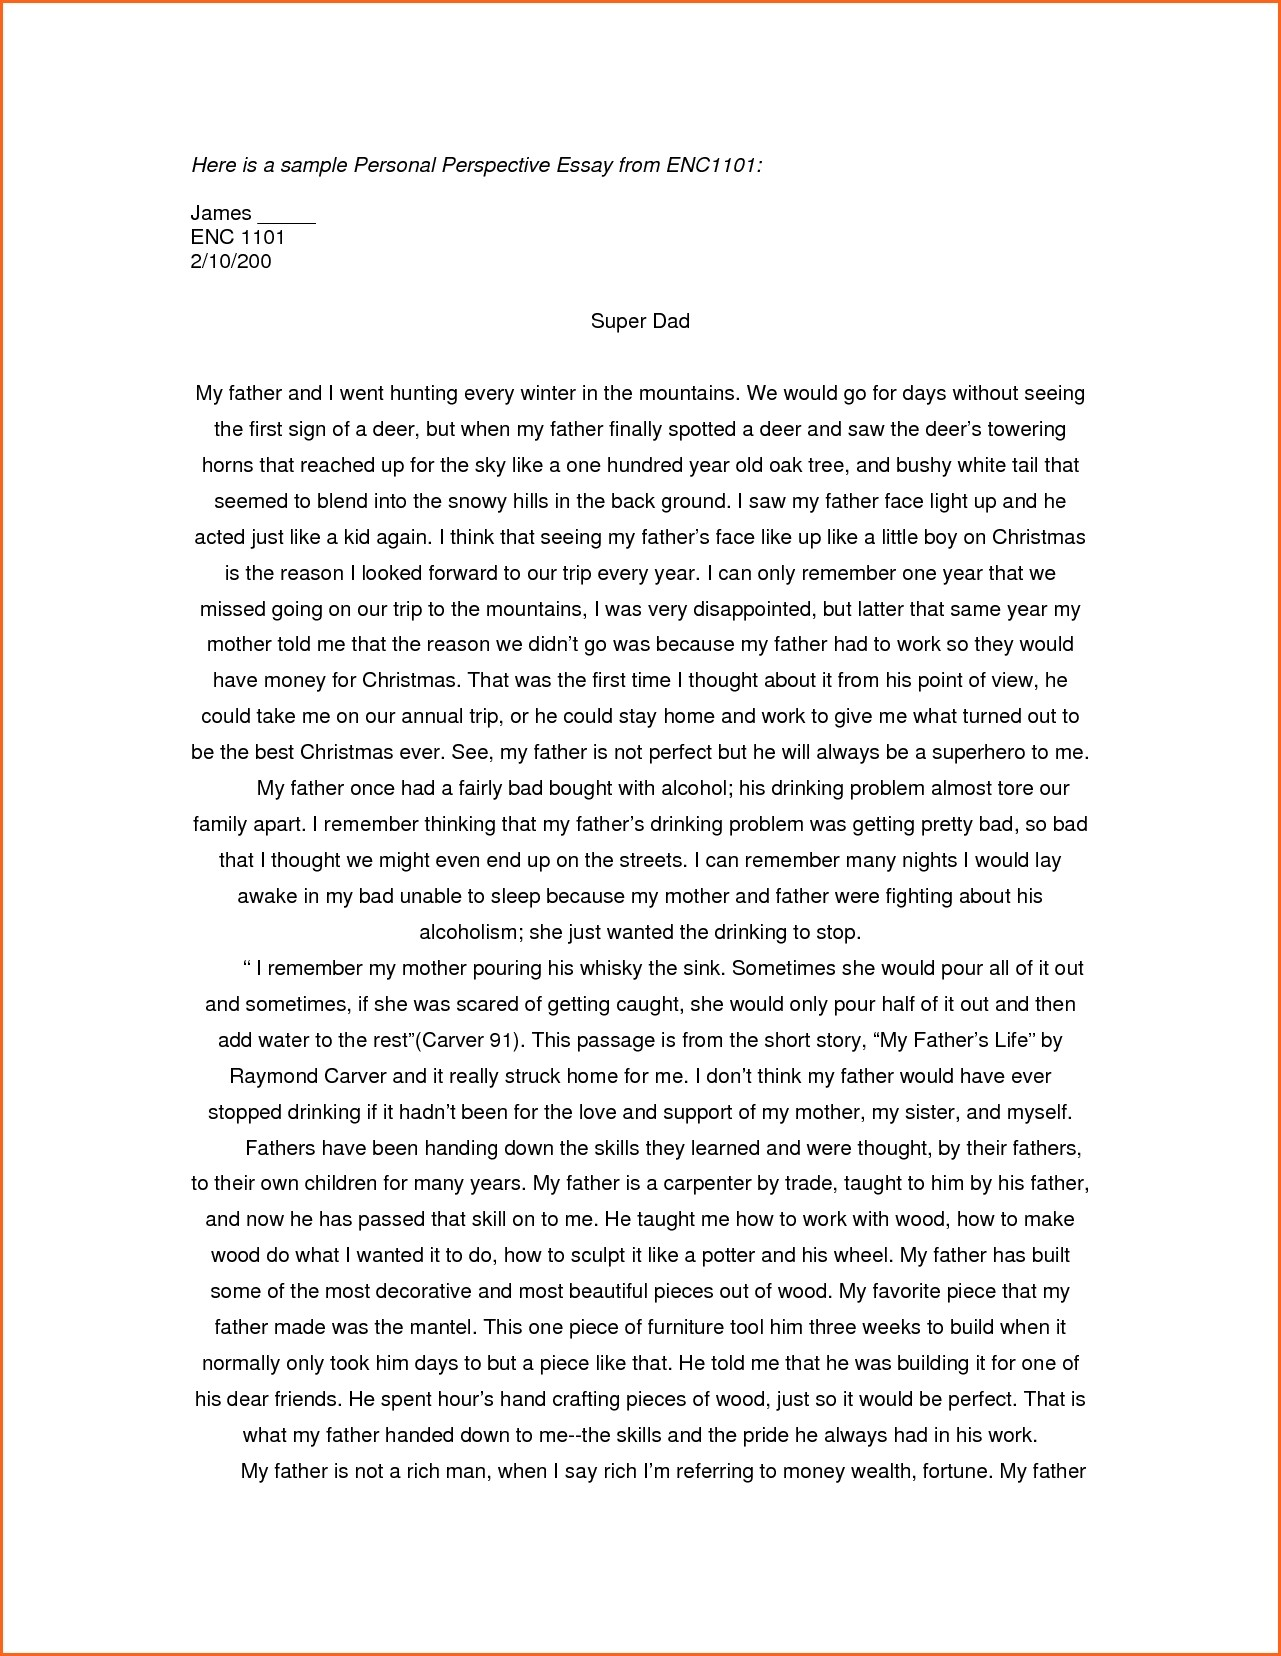 018 Example Of Personal Essay For College Application Examples Cover Letter Formidable Format Narrative Scholarships Samples Graduate School Full